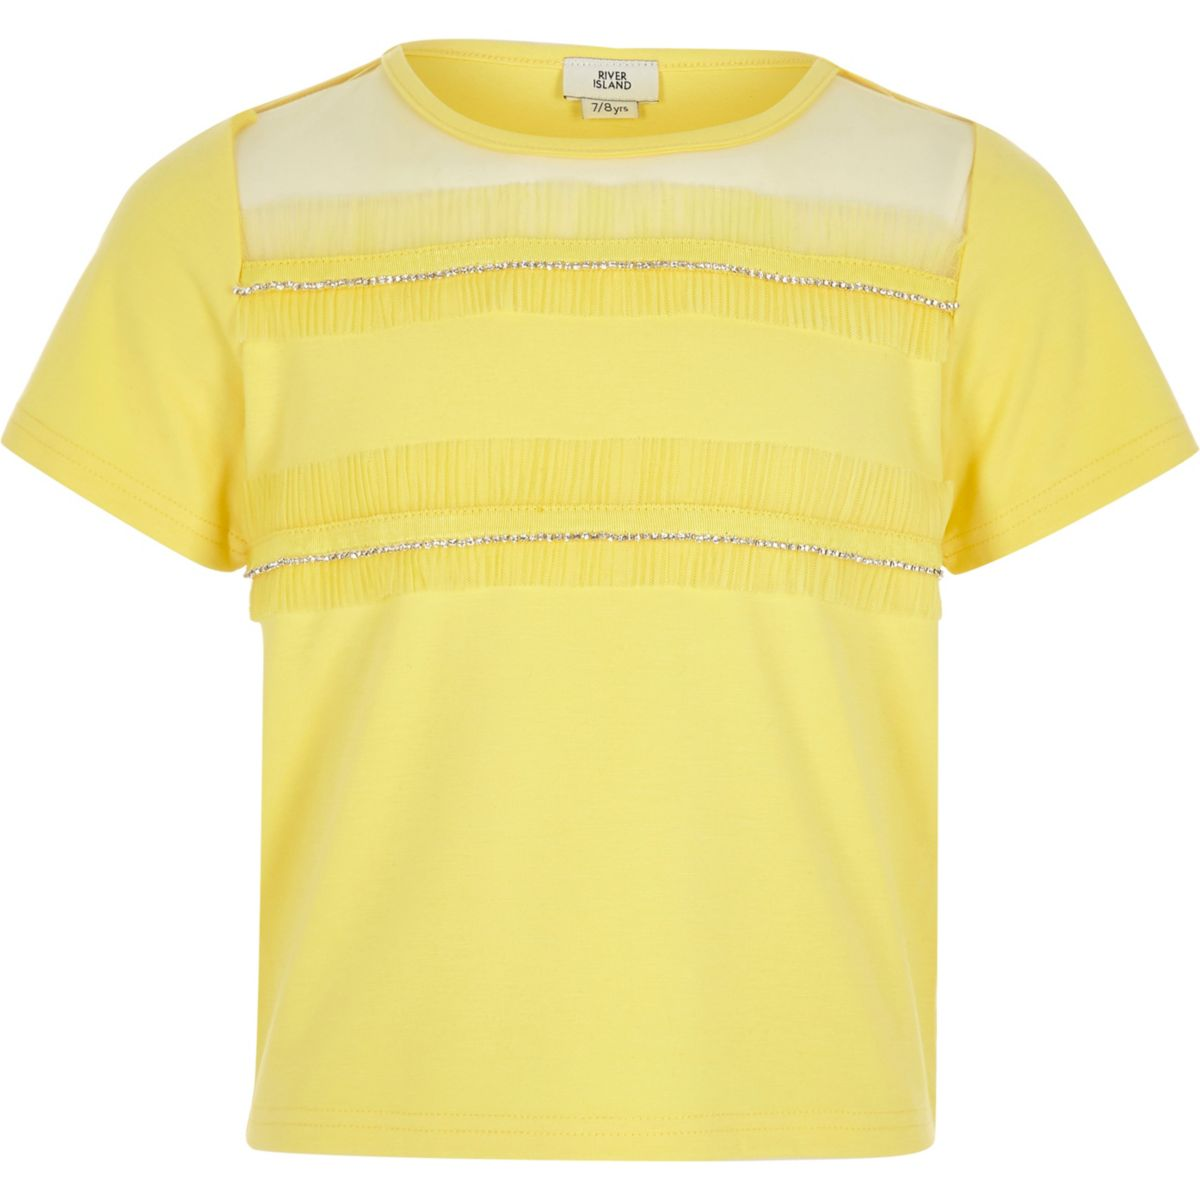 Girls yellow diamante mesh trim T-shirt